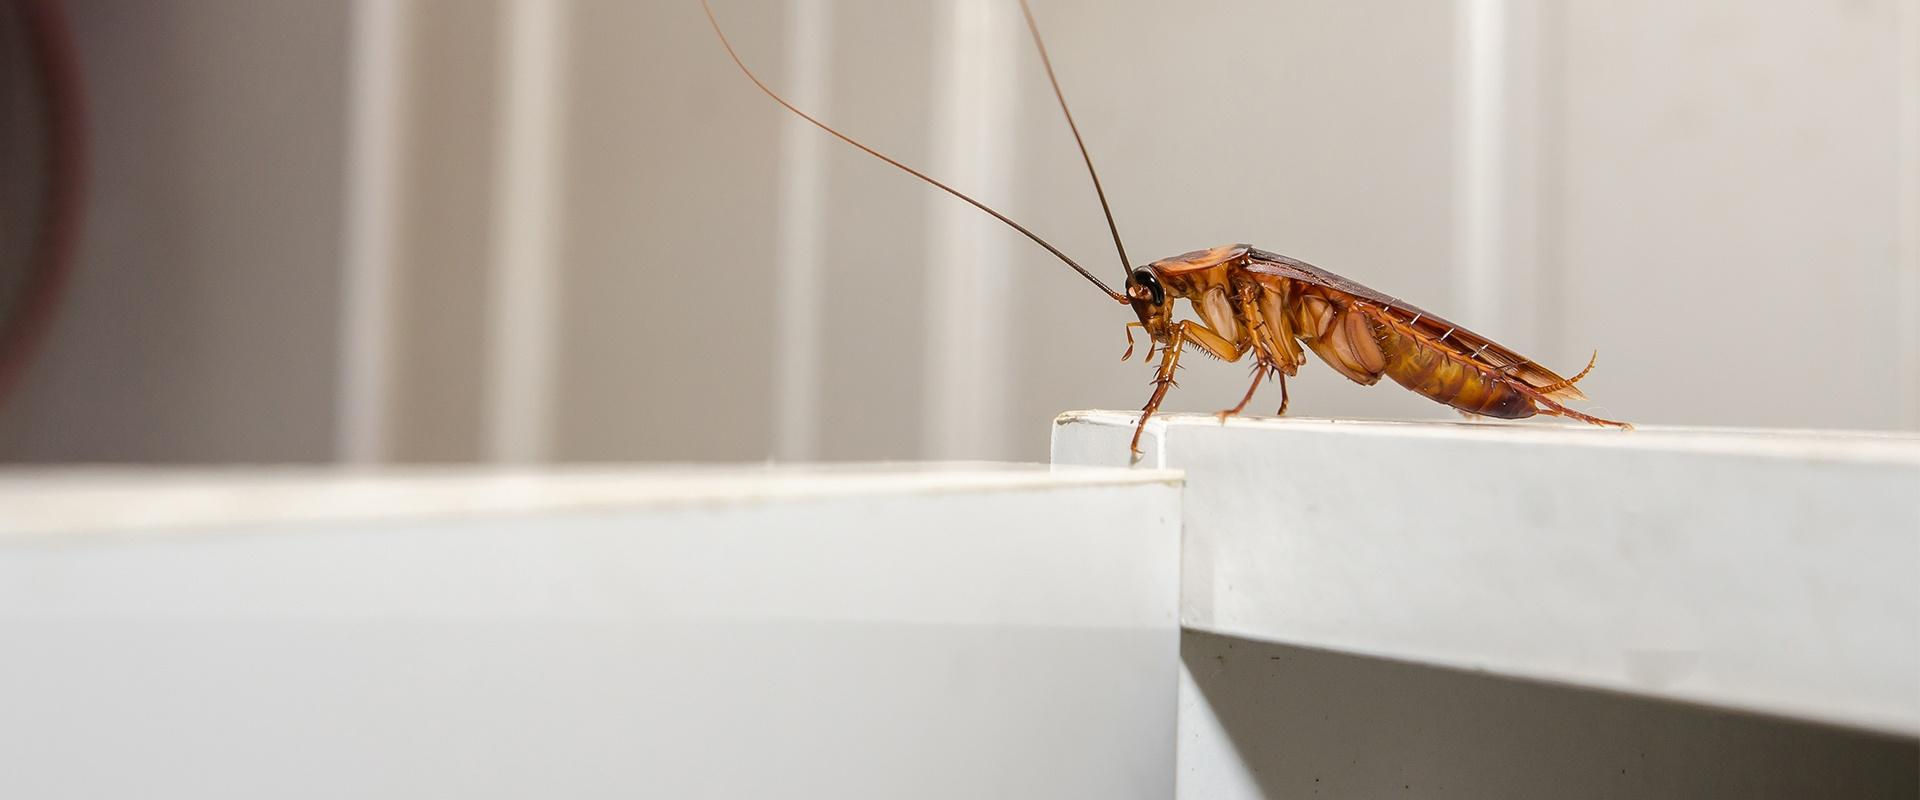 a cockroach on a bathroom sink